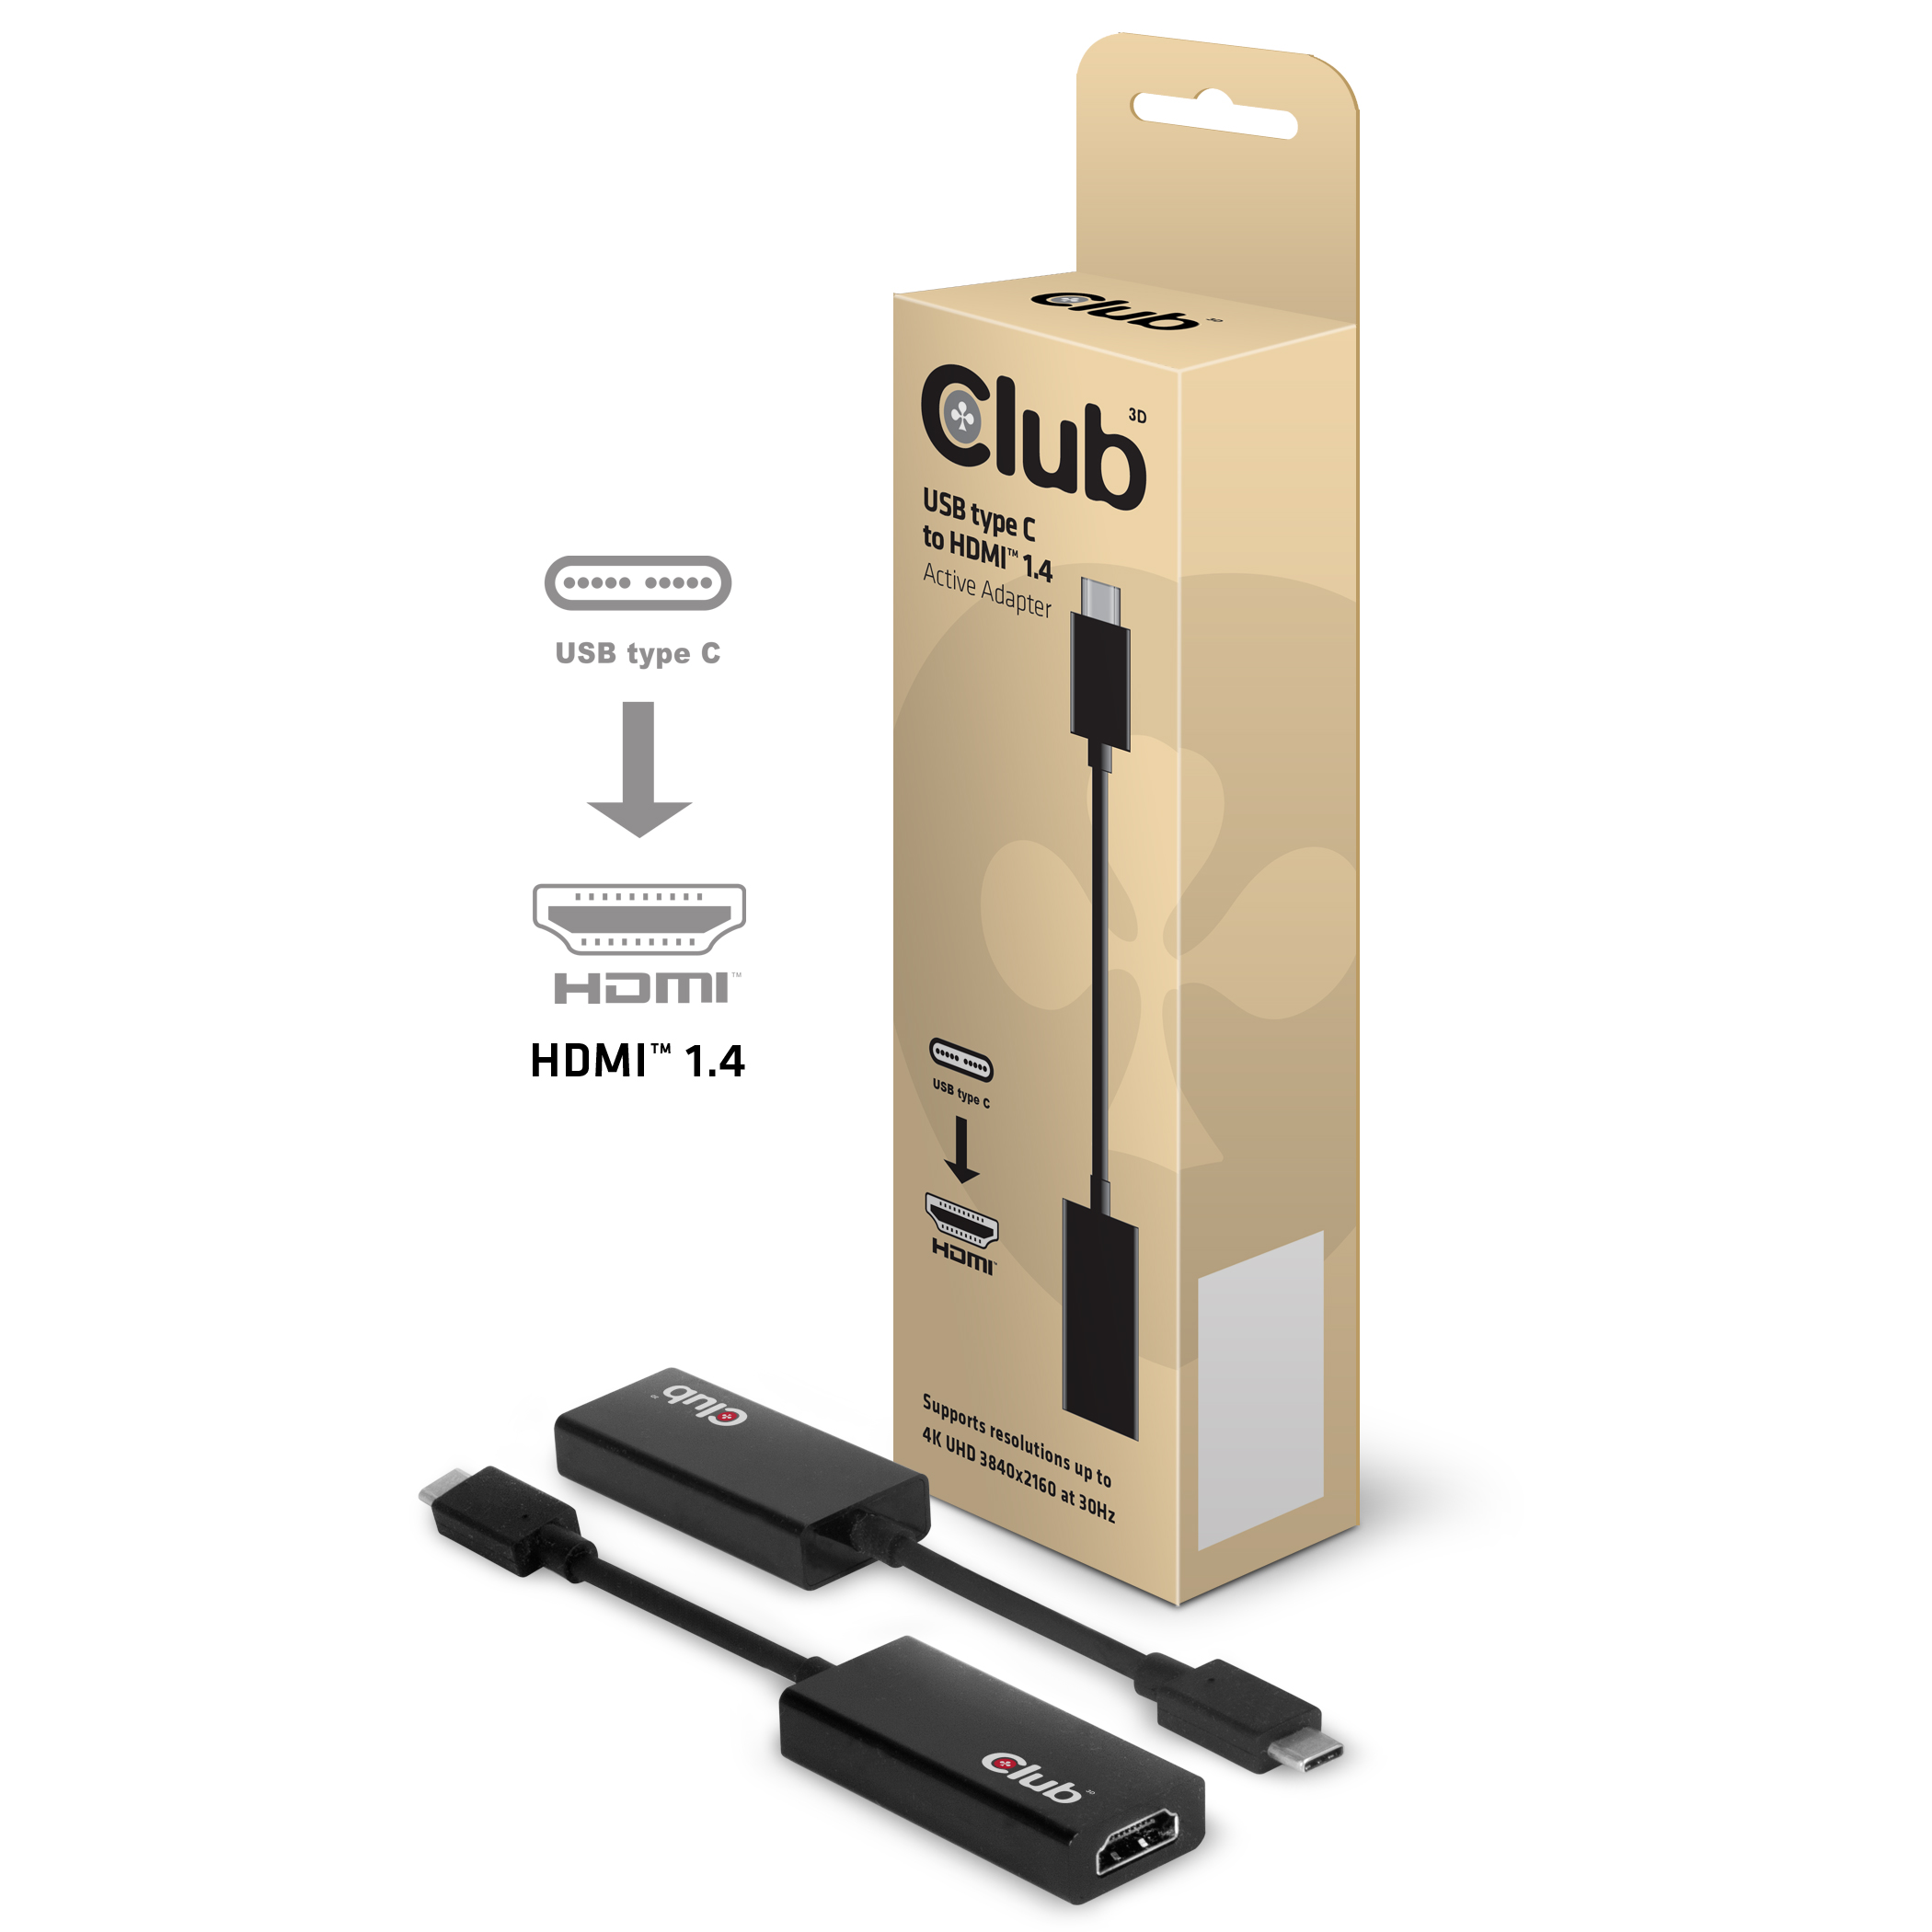 CLUB 3D USB 3.1 TYPE C TO HDMI 1.4 3D ACTIVE ADAPTER